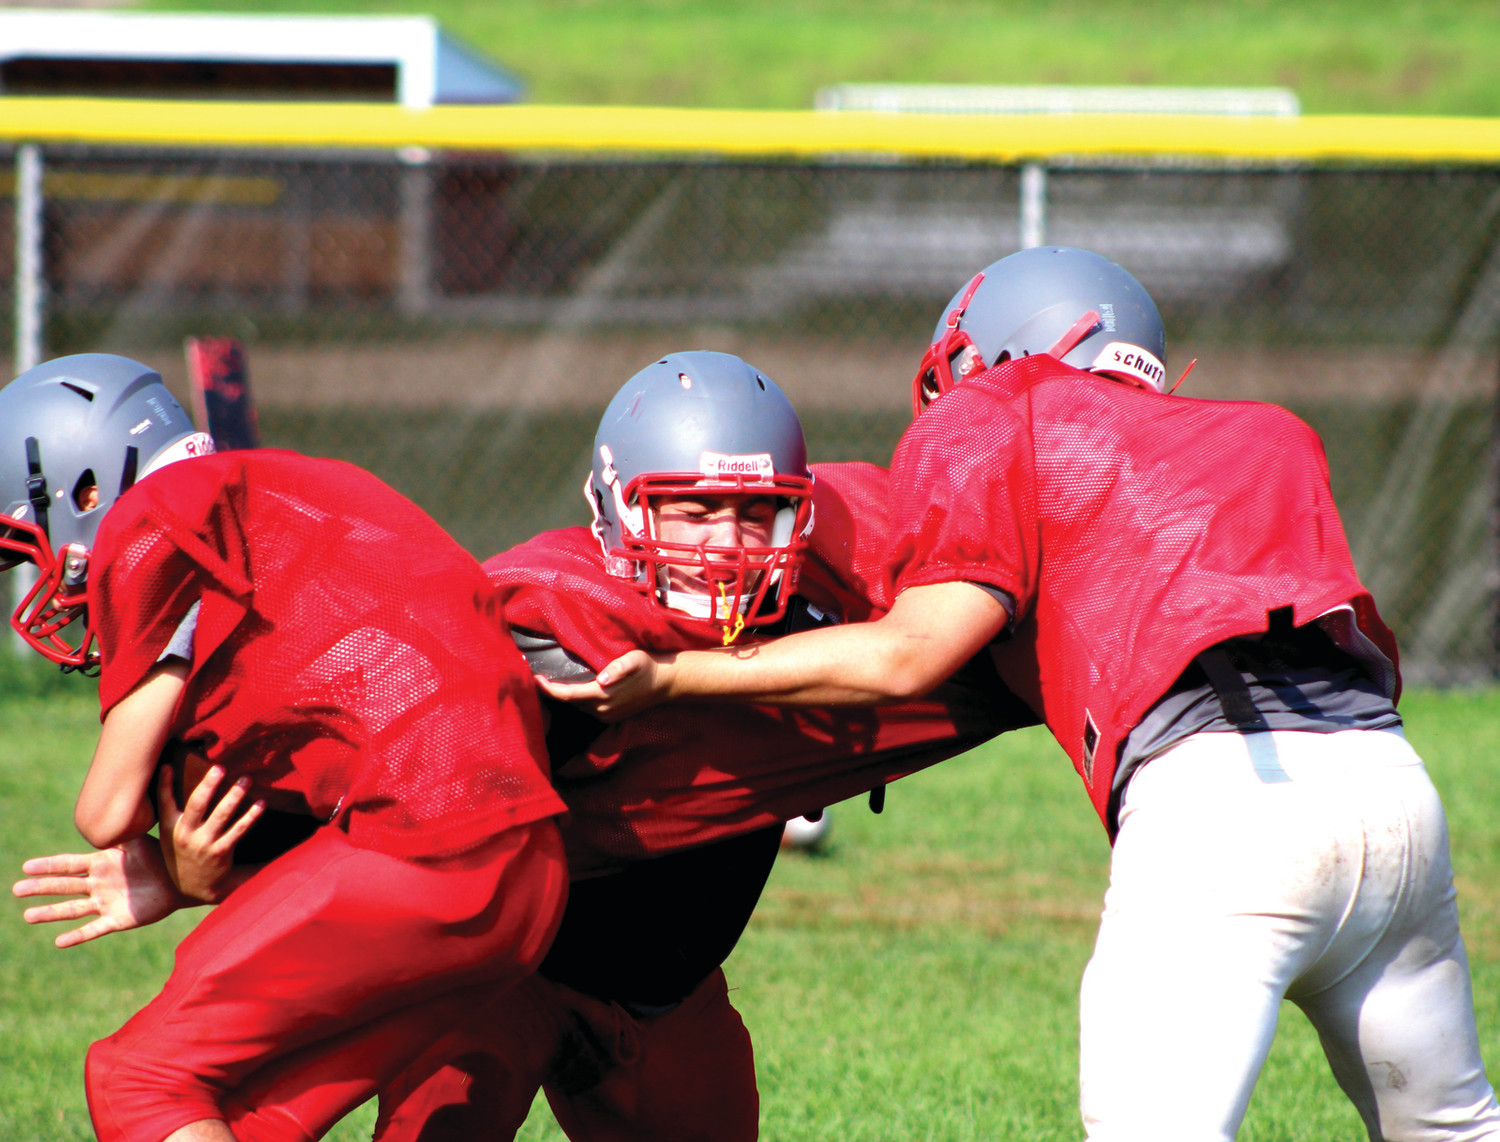 TRAINING CAMP: Members of the Cranston West football team grind through training camp last week in preparation for the 2018 regular season.